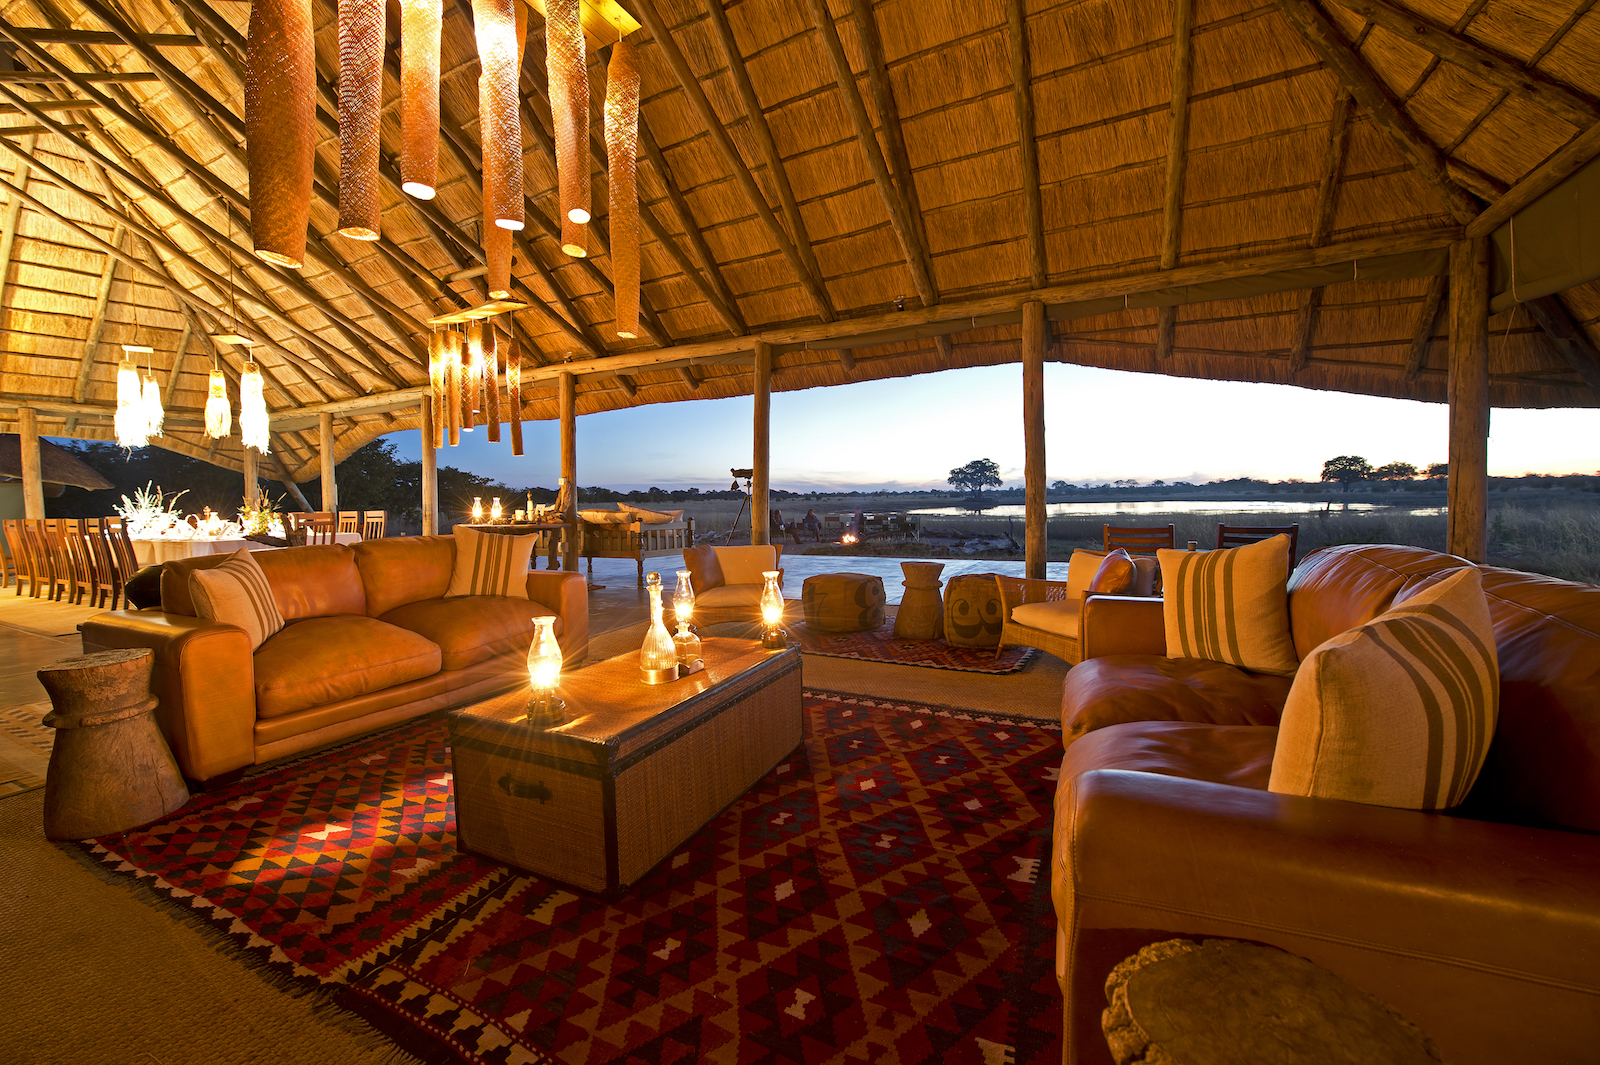 Safari at Camp Hwange, Hwange National Park, Zimbabwe